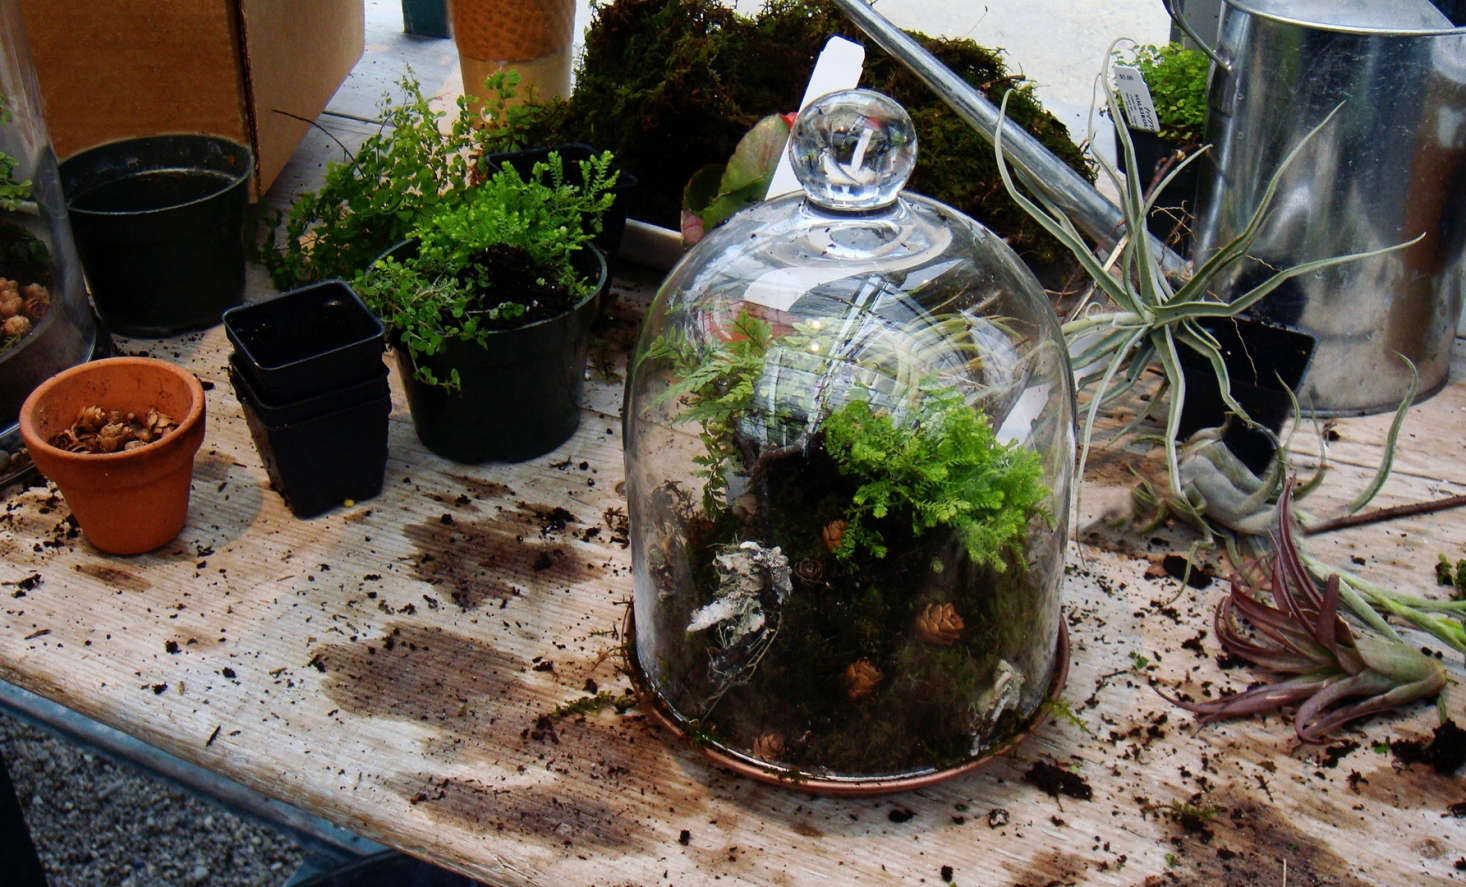 When Terrariums Go Bad 6 Tips For Troubleshooting Mold Yecch